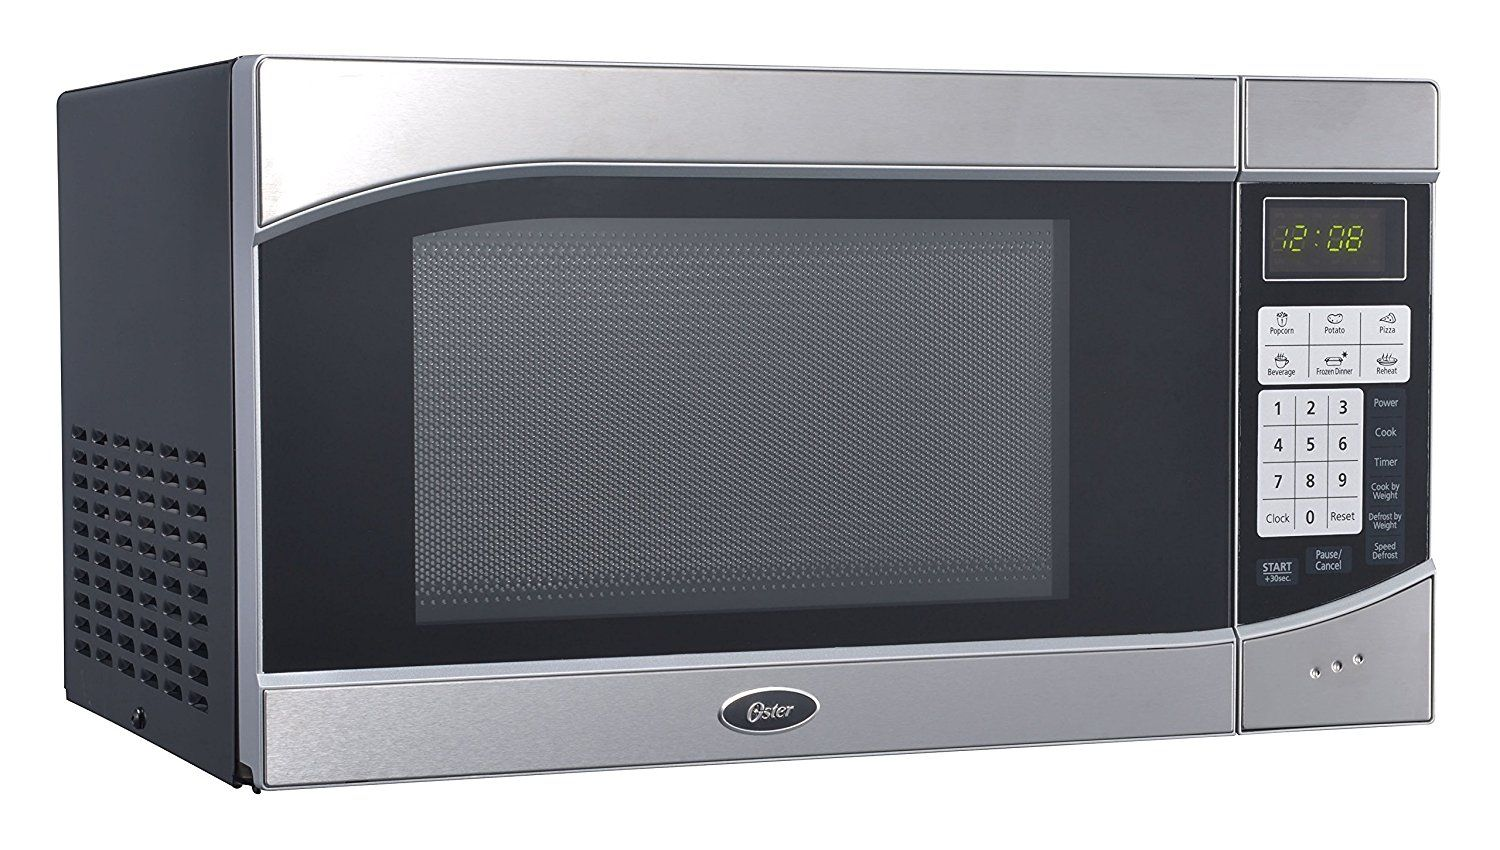 Oster Ogh6901 0 9 Cubic Feet 900 Watt Countertop Digital Microwave Oven Stainless Steel Black This Is An Amazon Affiliate Link Compact Microwave Compact Microwave Oven Microwave Oven